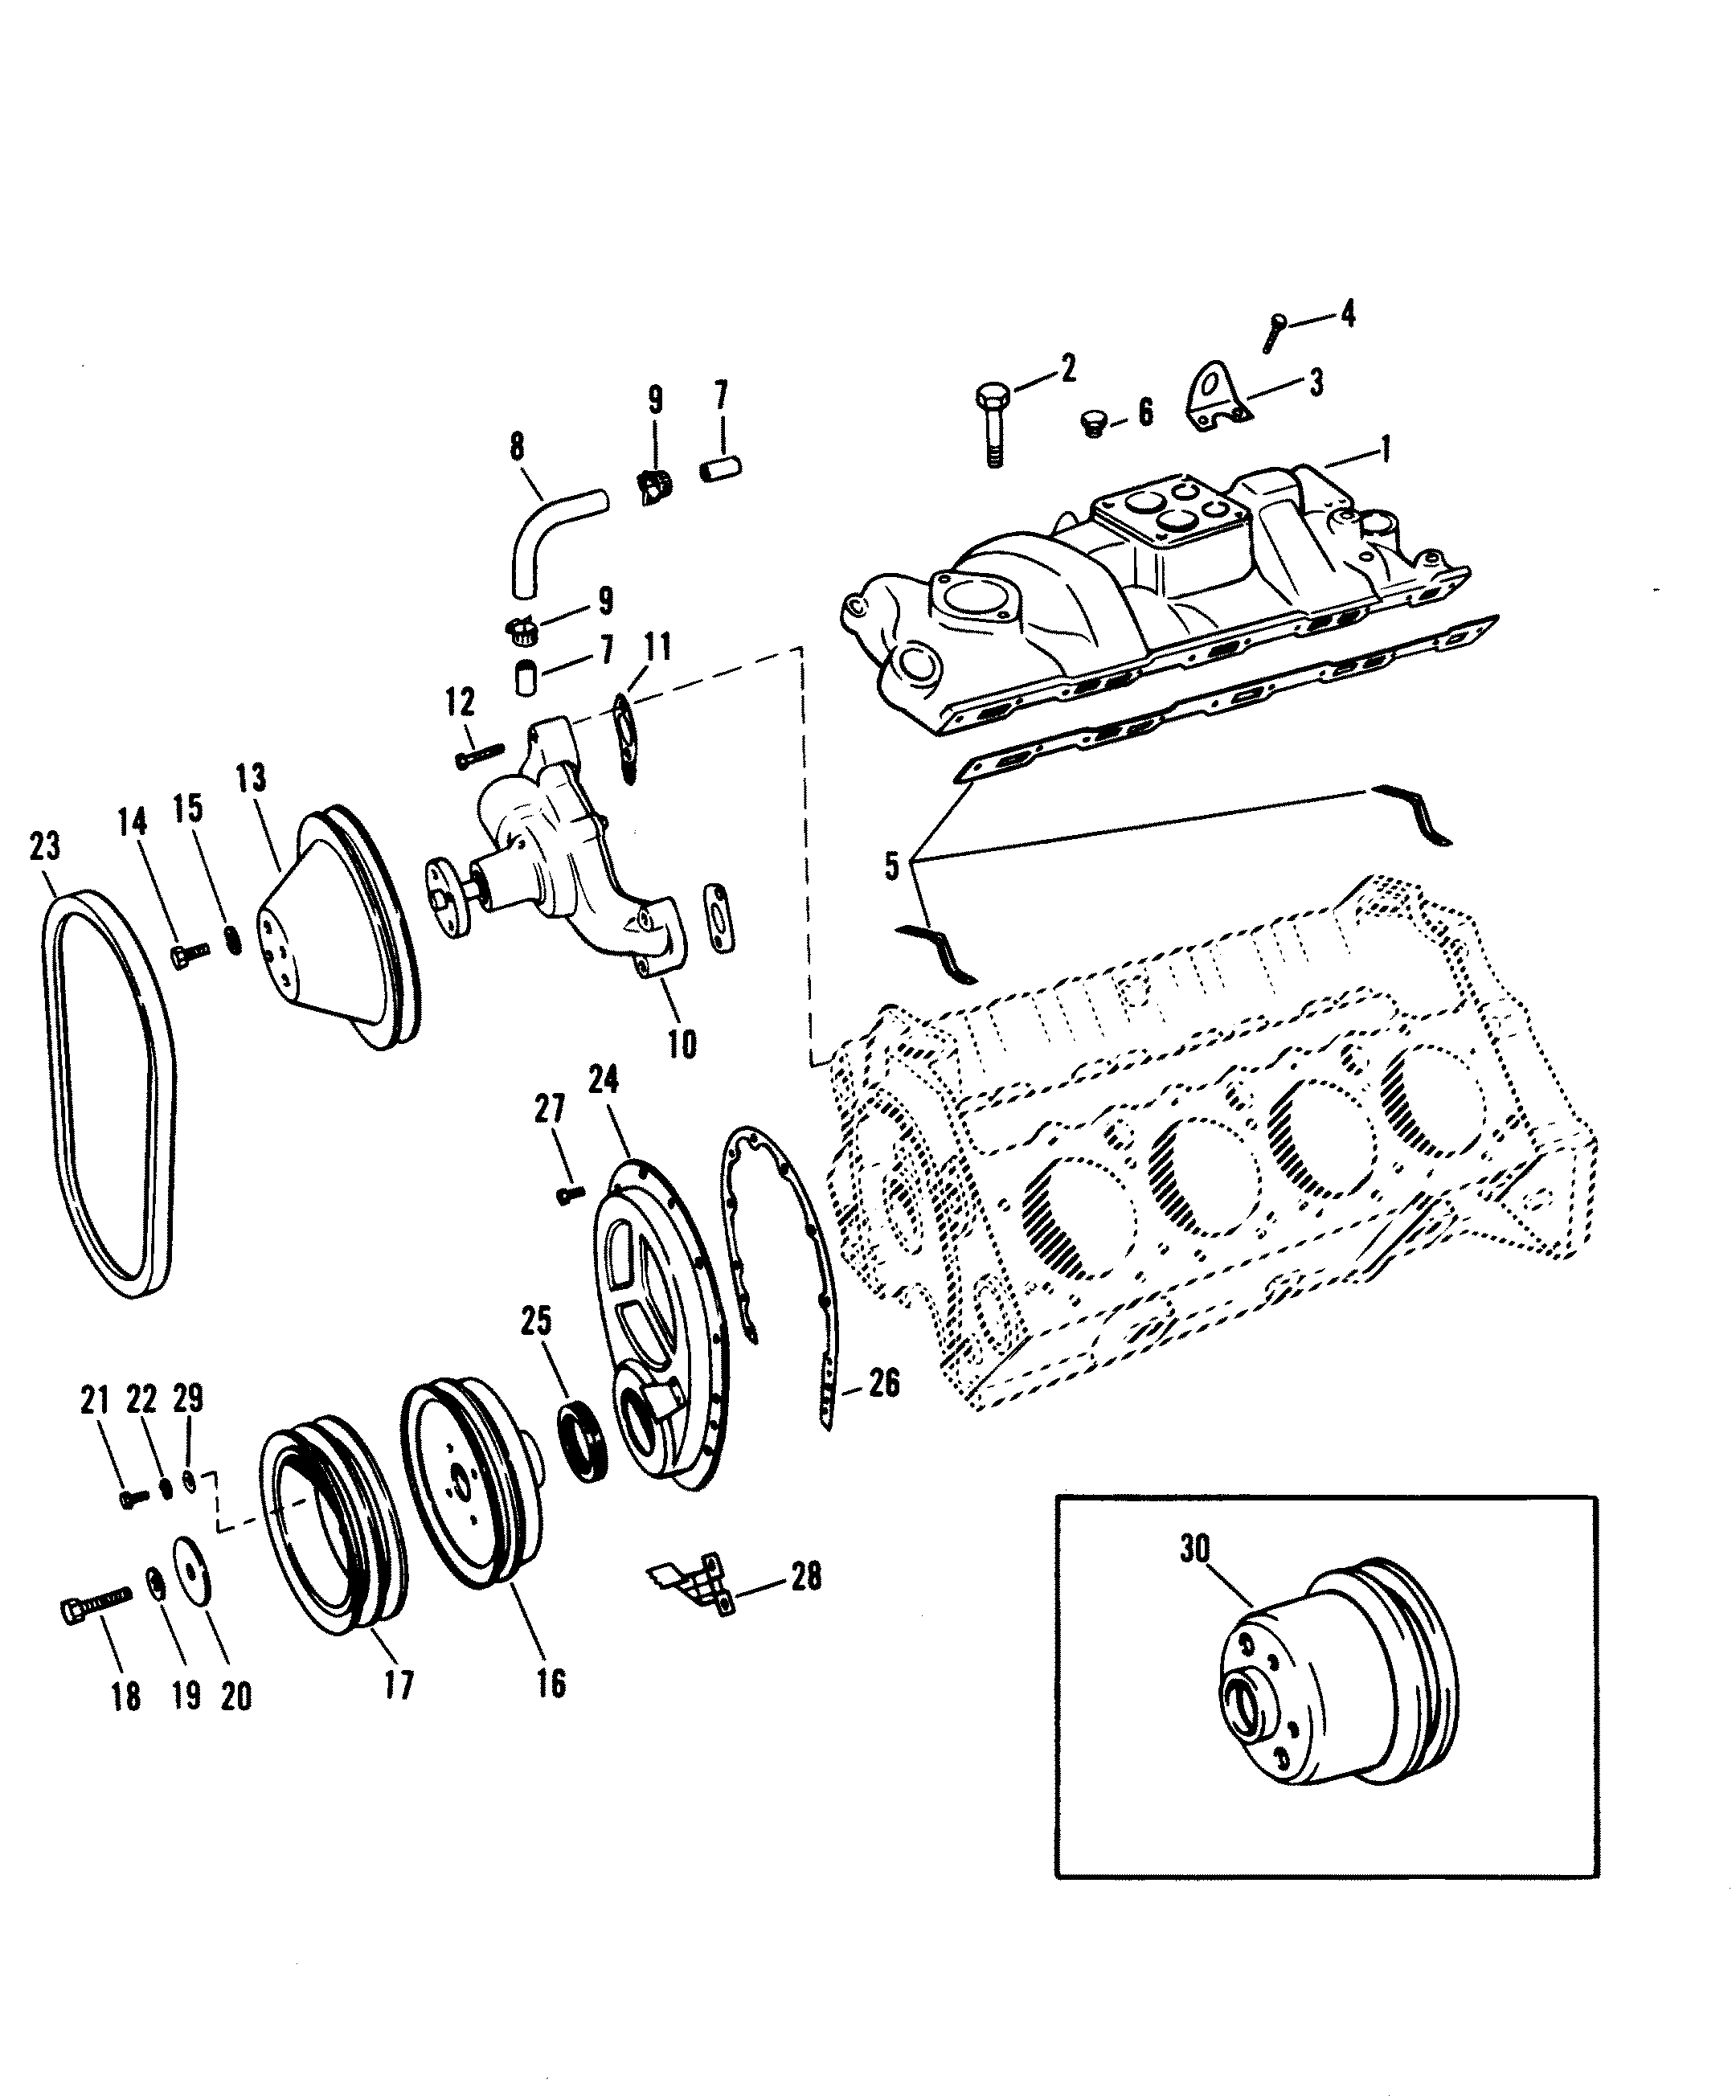 Small Engine Exterior Diagram moreover 00003 likewise 4563 furthermore 400667411851 besides 331156411405. on carburetor adapter plates